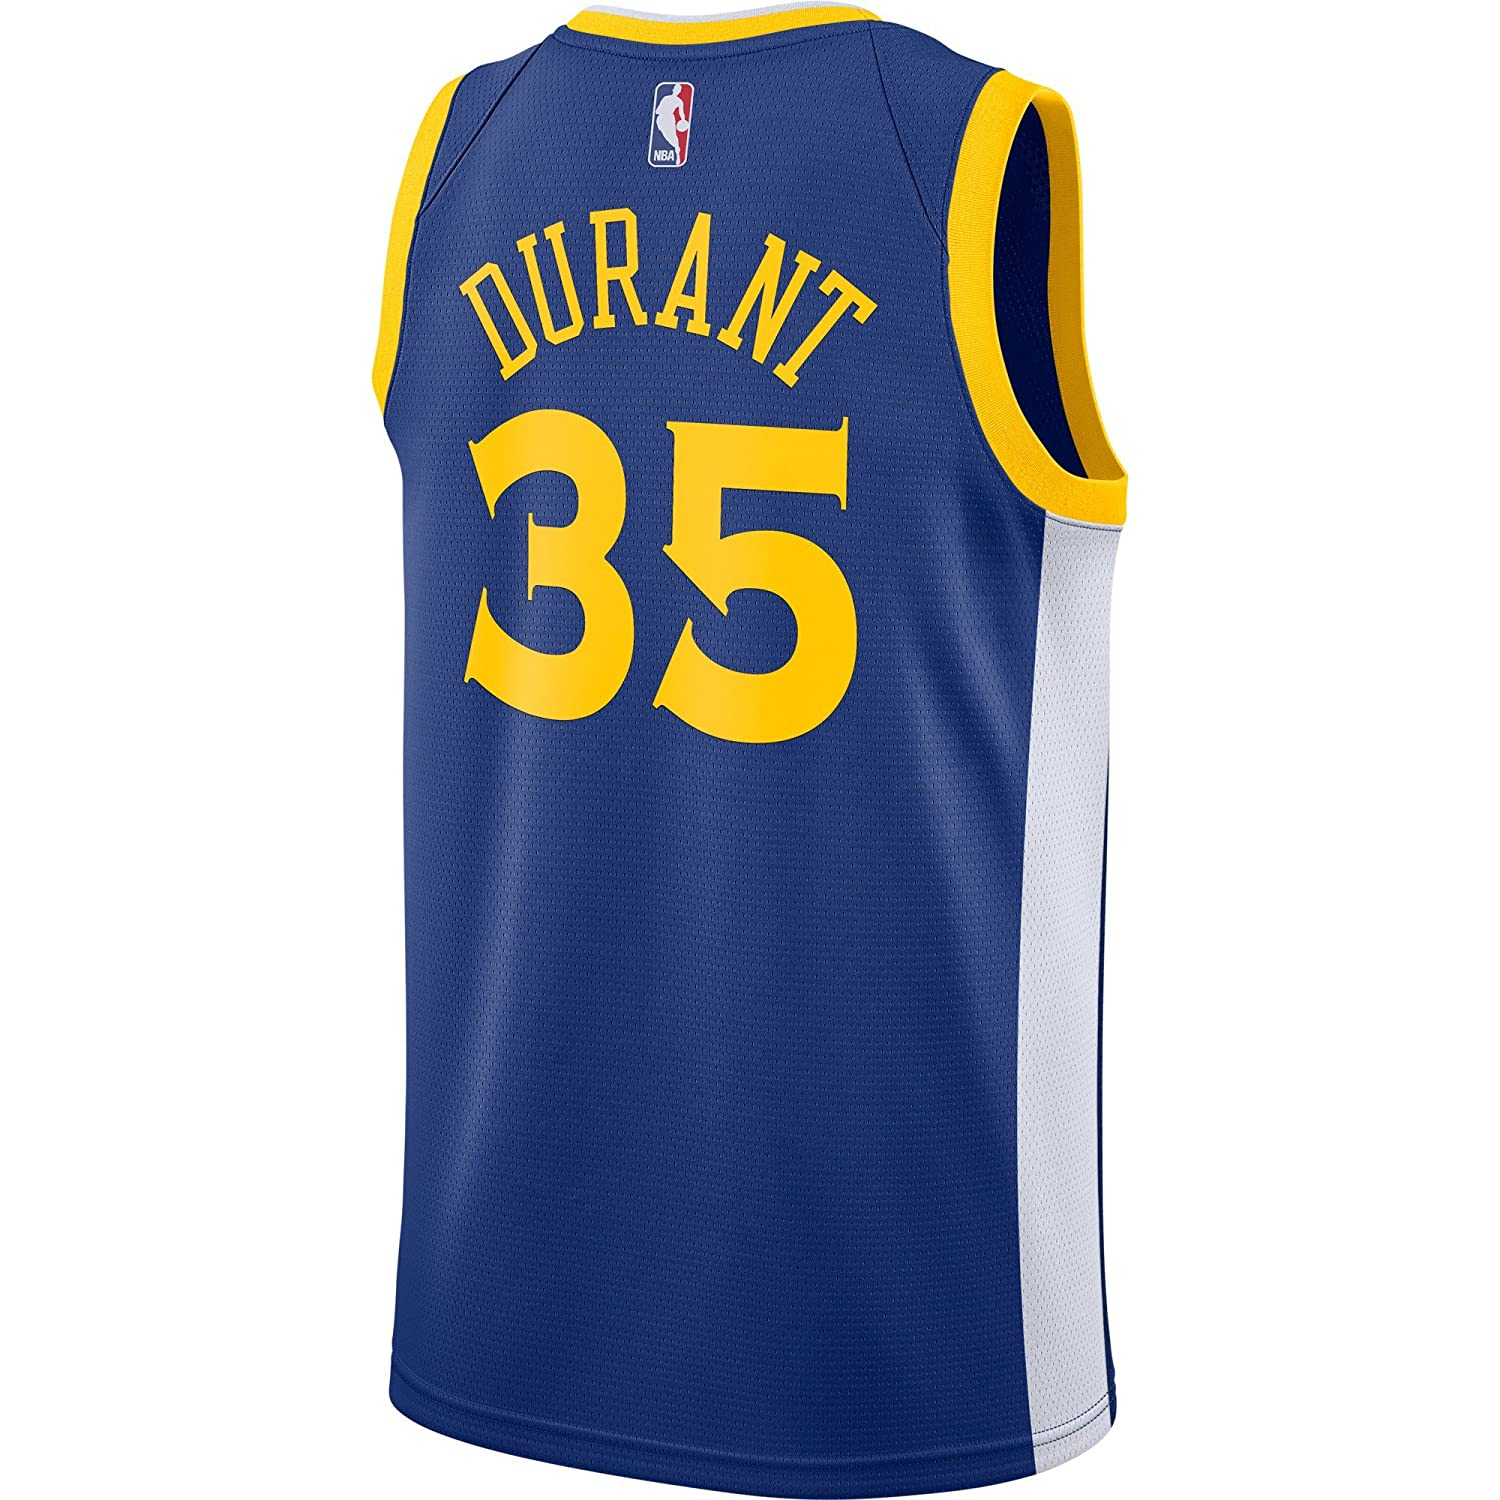 3430927a7c92 Amazon.com   Nike Kevin Durant Golden State Warriors NBA Men s Royal Blue  Road Icon Edition Swingman Connected Jersey   Sports   Outdoors